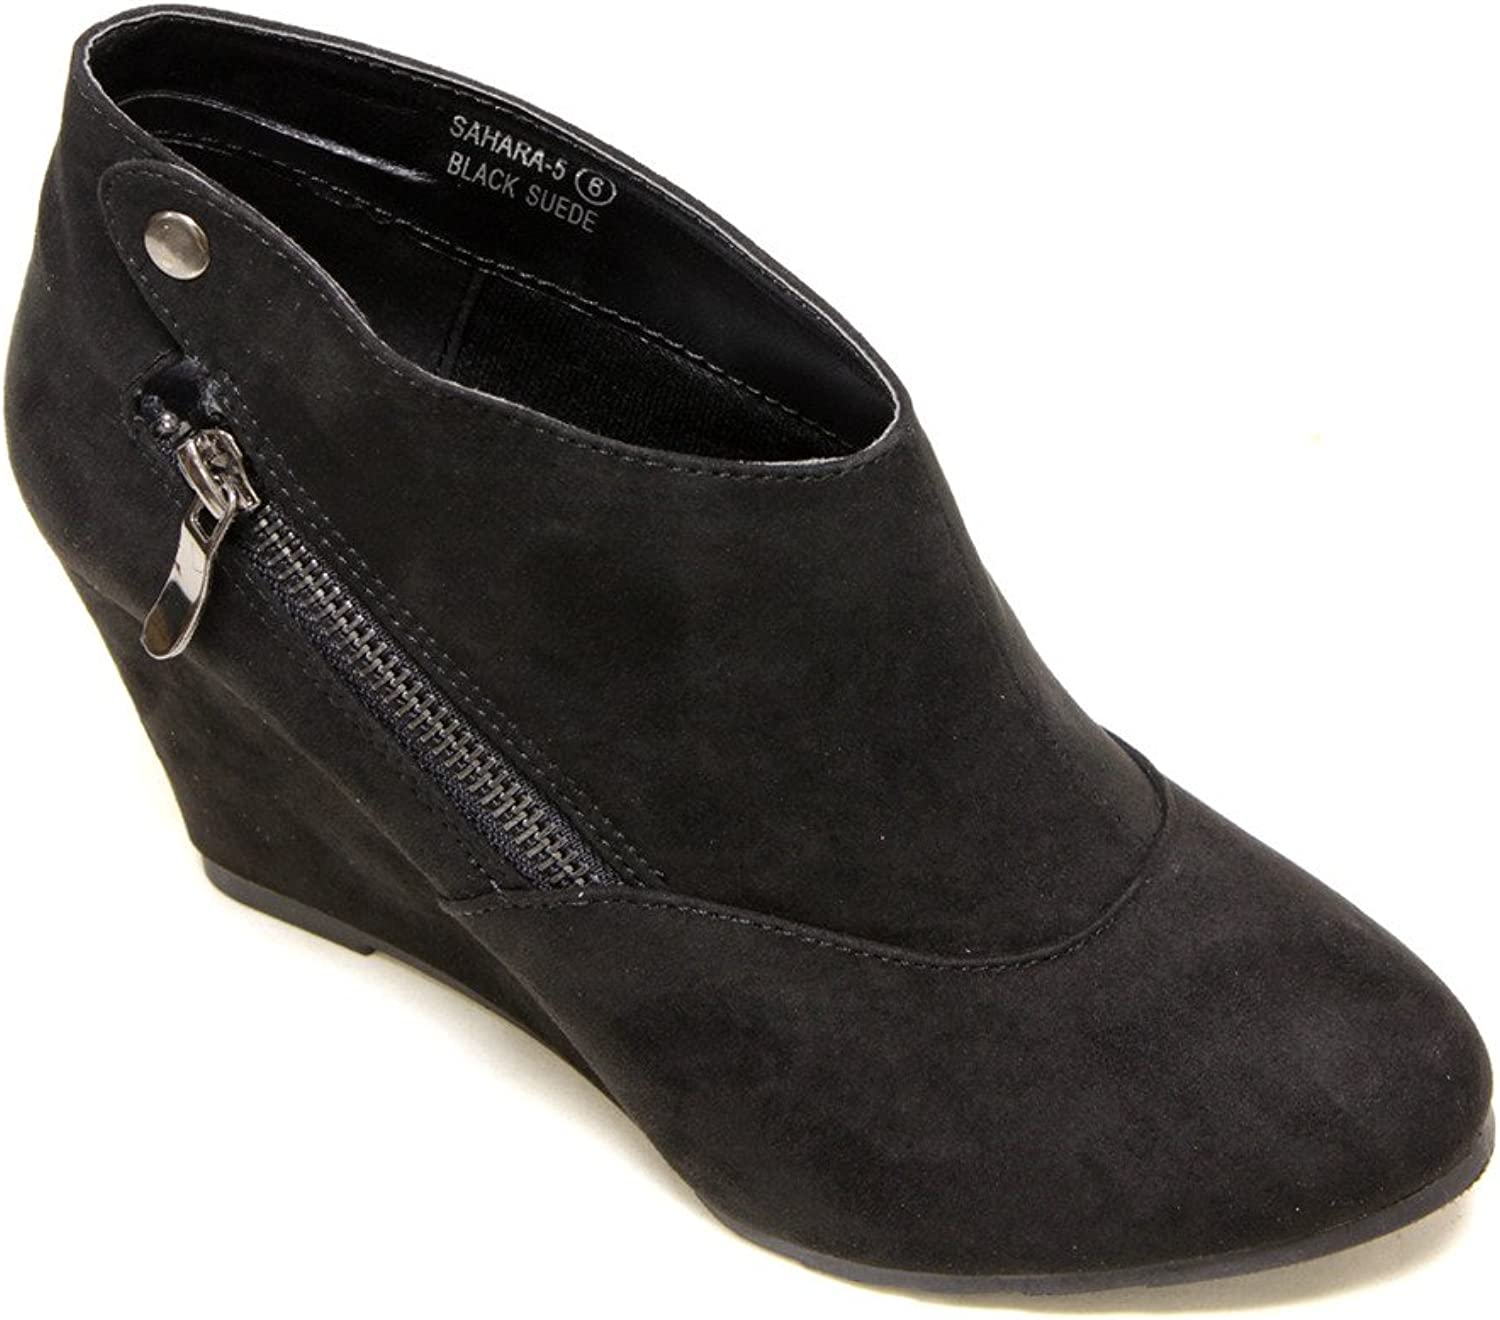 Bella Marie Sahara-5 Women's Almond Toe Wedge Heel Side Zipper And Snap Decor Low Ankle Suede Booties